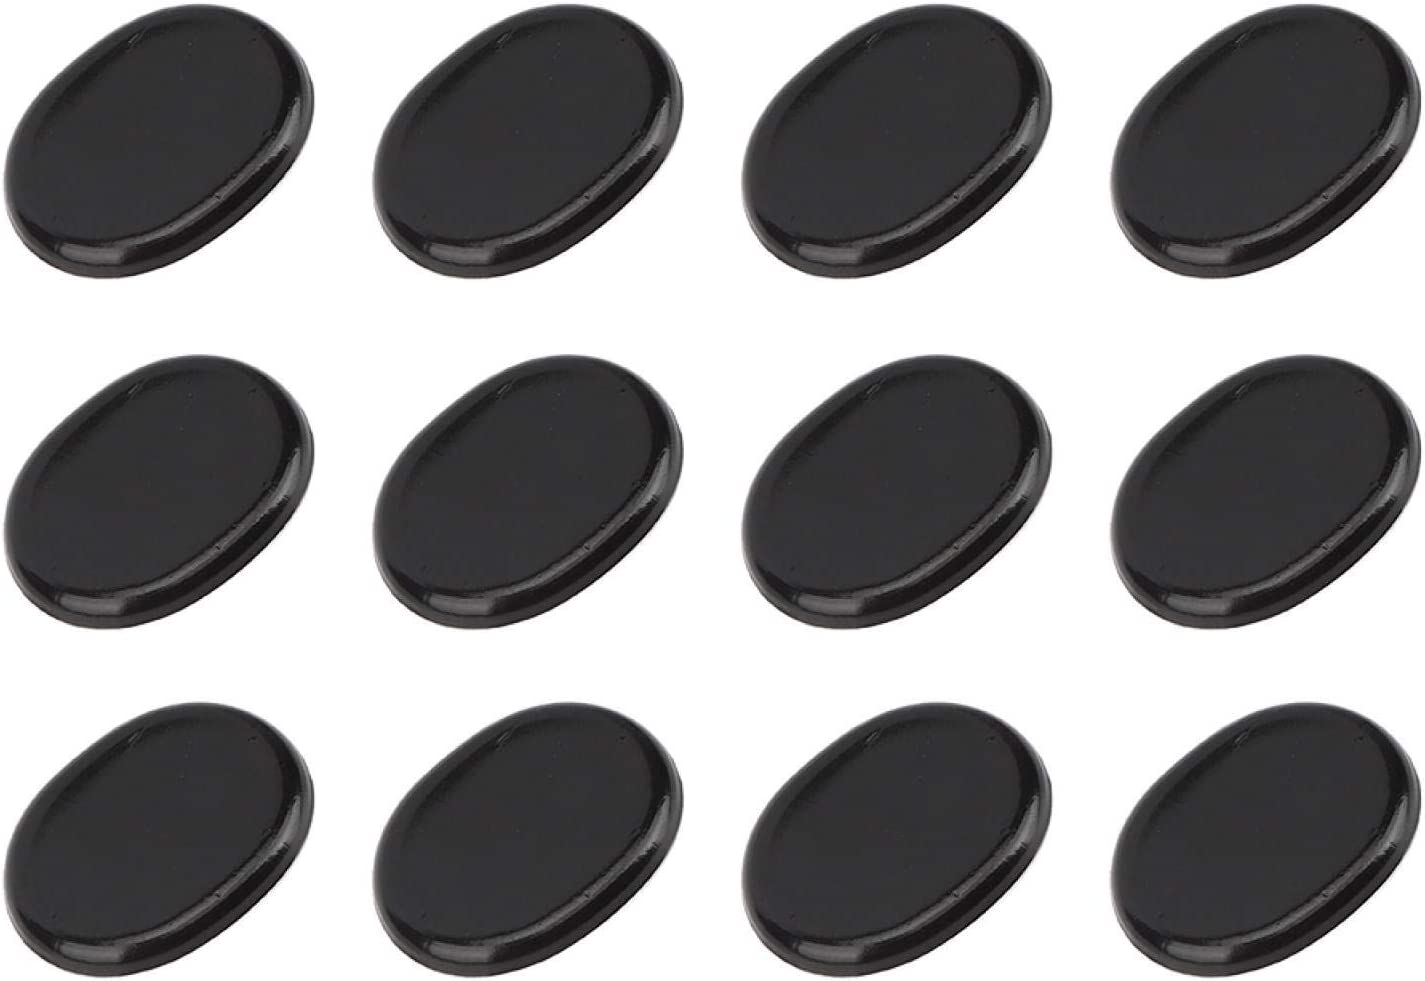 EBTOOLS Drum Damper Pads 12PCs Silencers Pra New product Special price for a limited time type Silicone